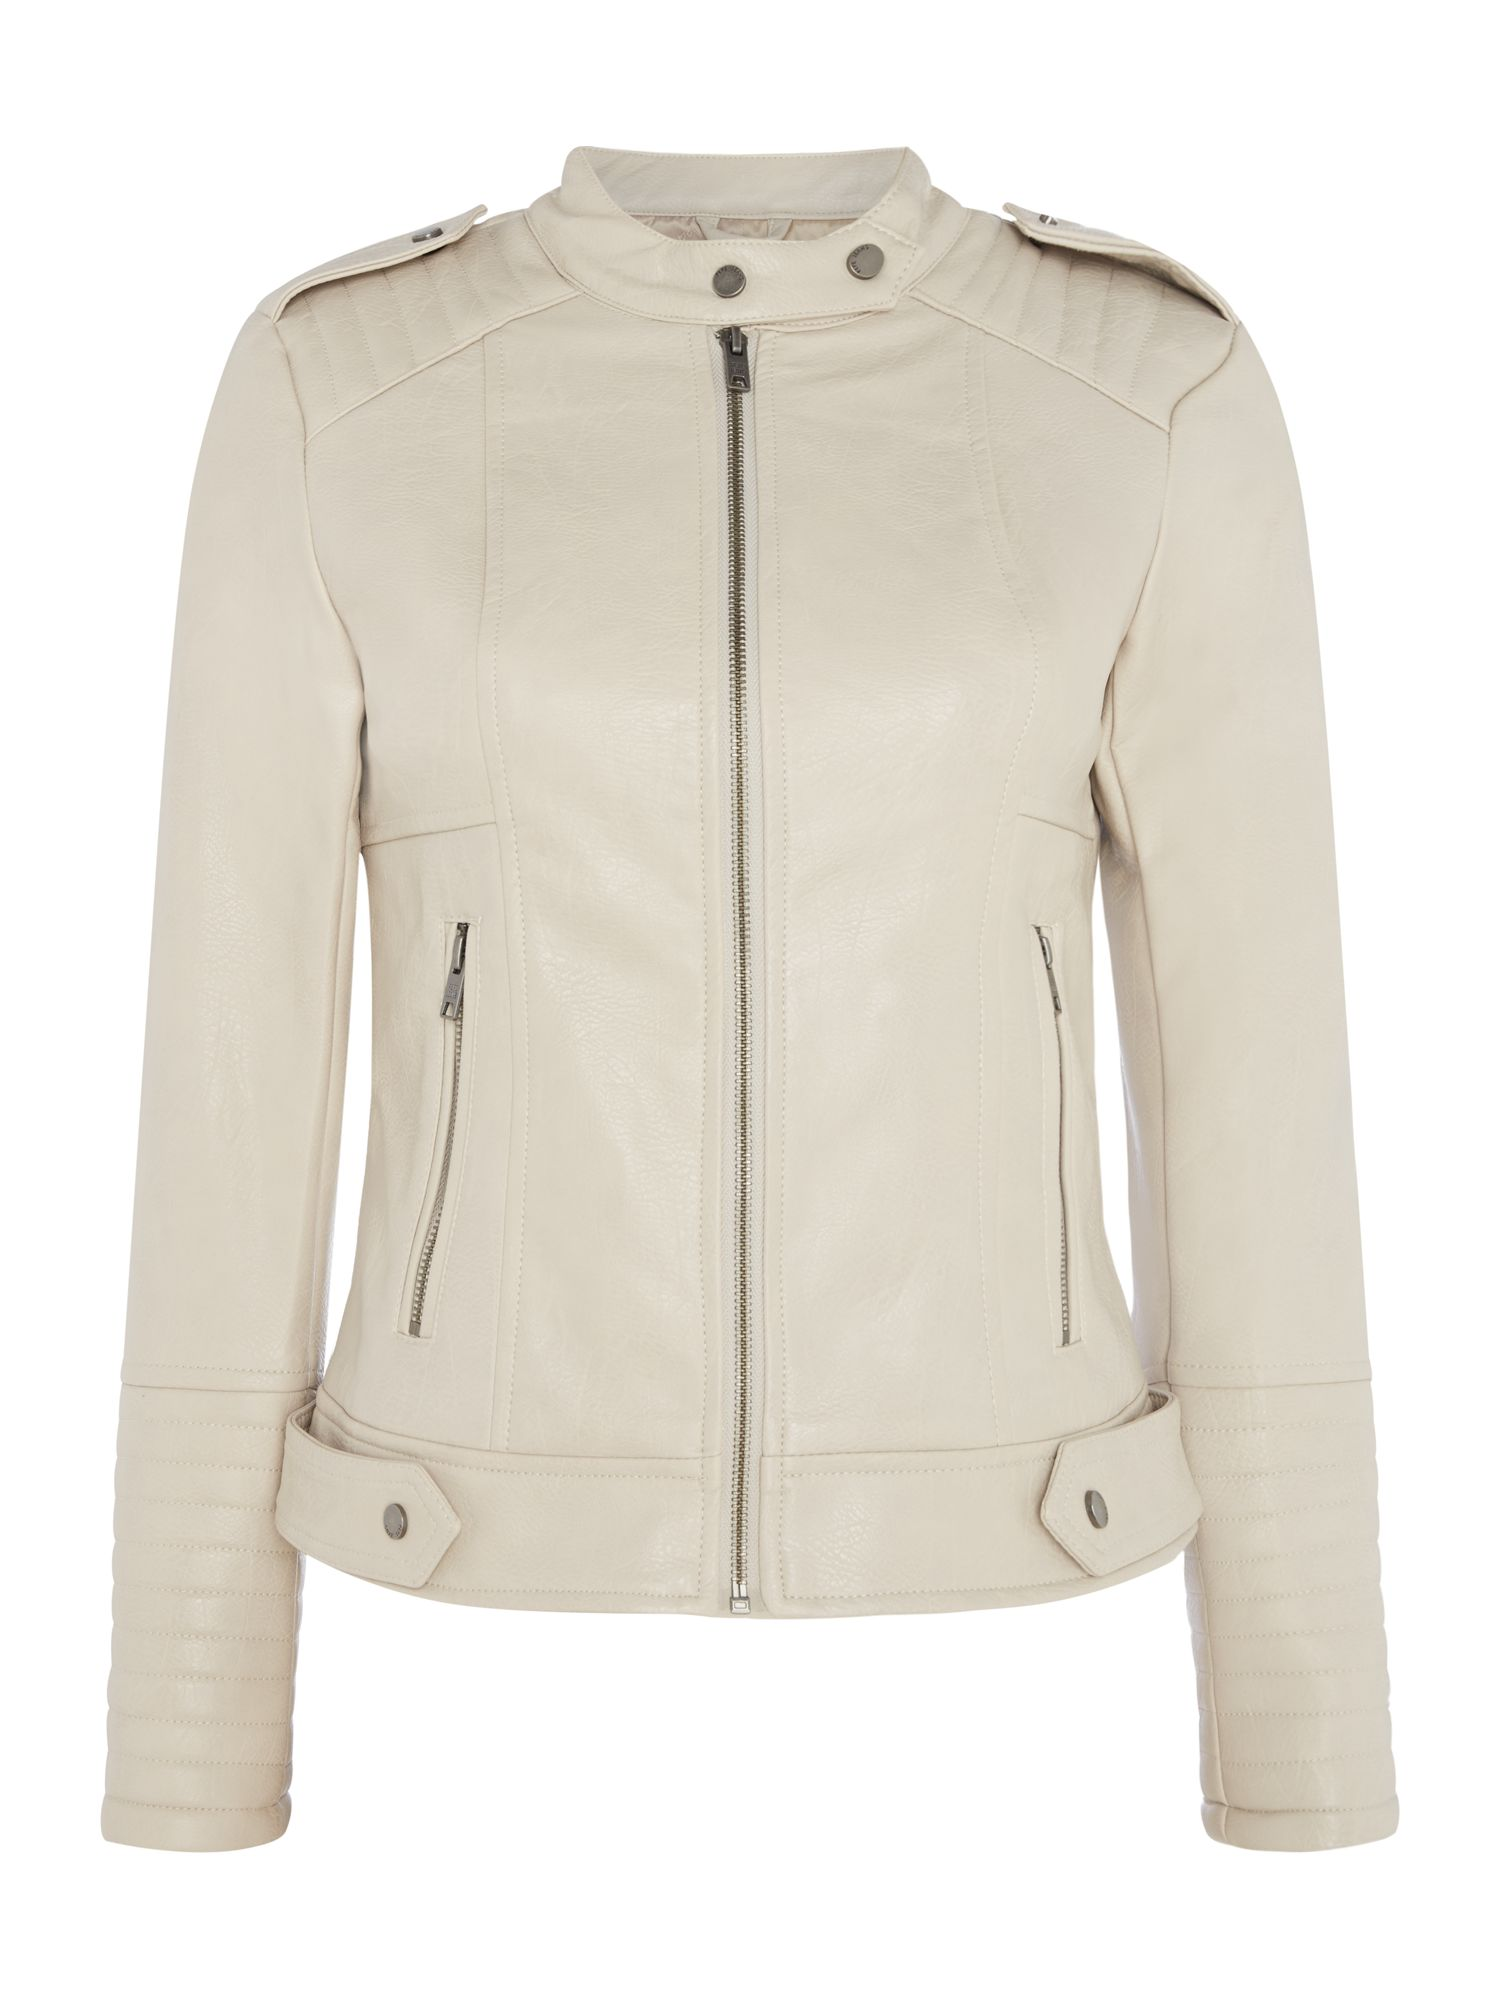 Pepe Jeans Pepe Jeans Outerwear, White